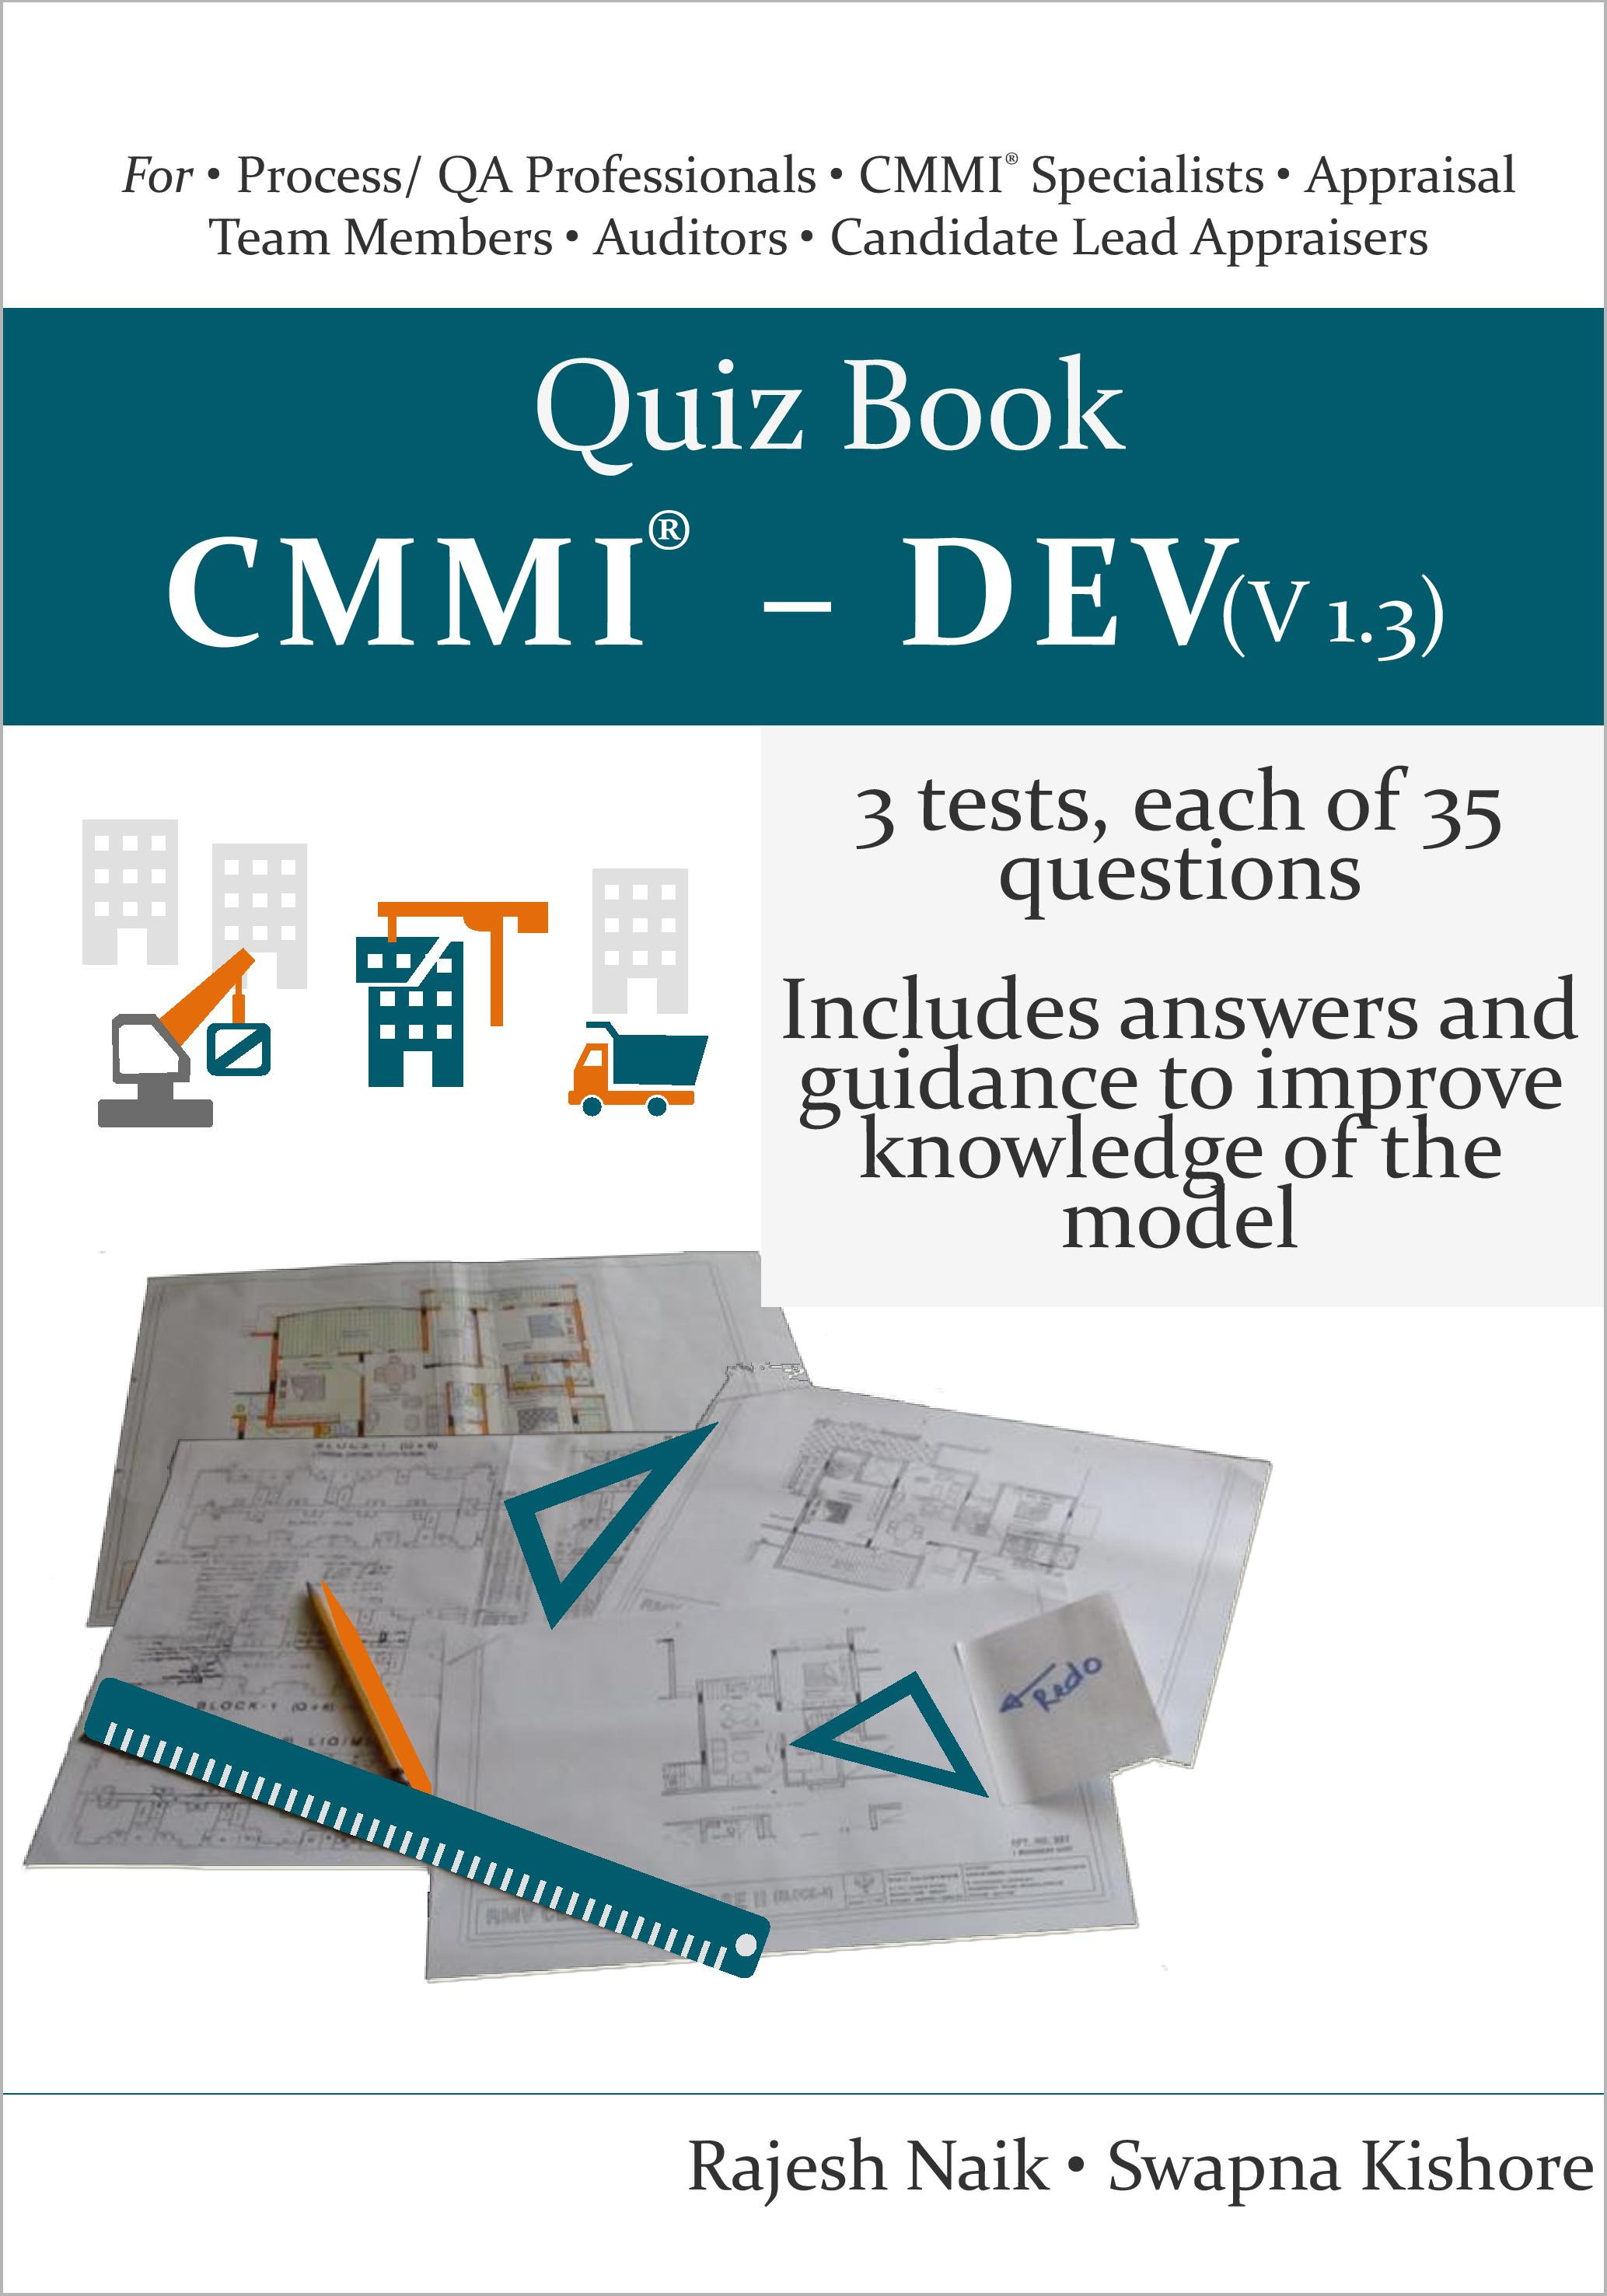 Quiz Book: CMMI® - DEV (v1.3) Book Cover